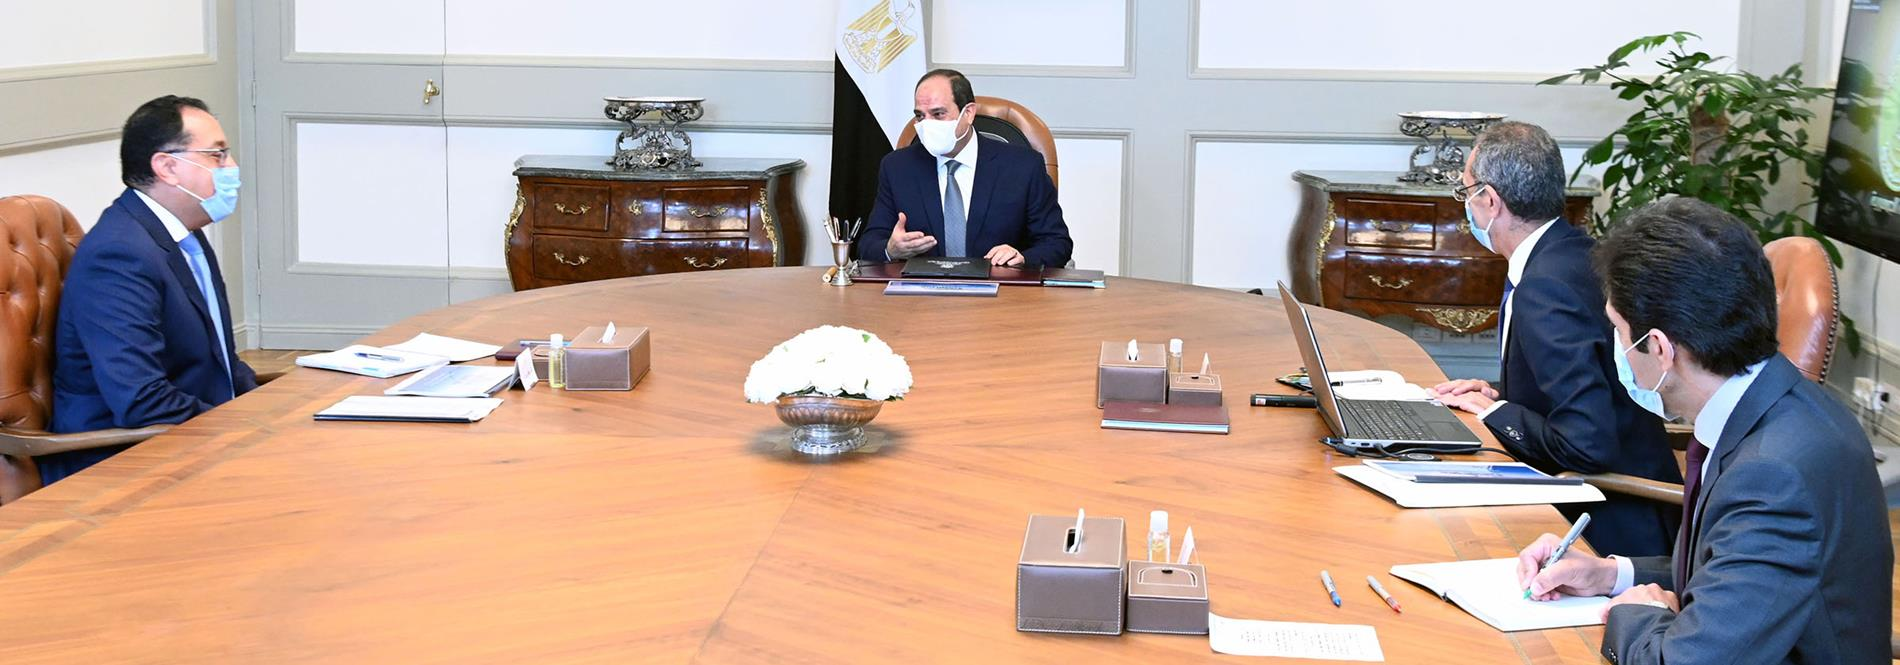 President El-Sisi Meets with PM and Minister of Communications and Information Technology